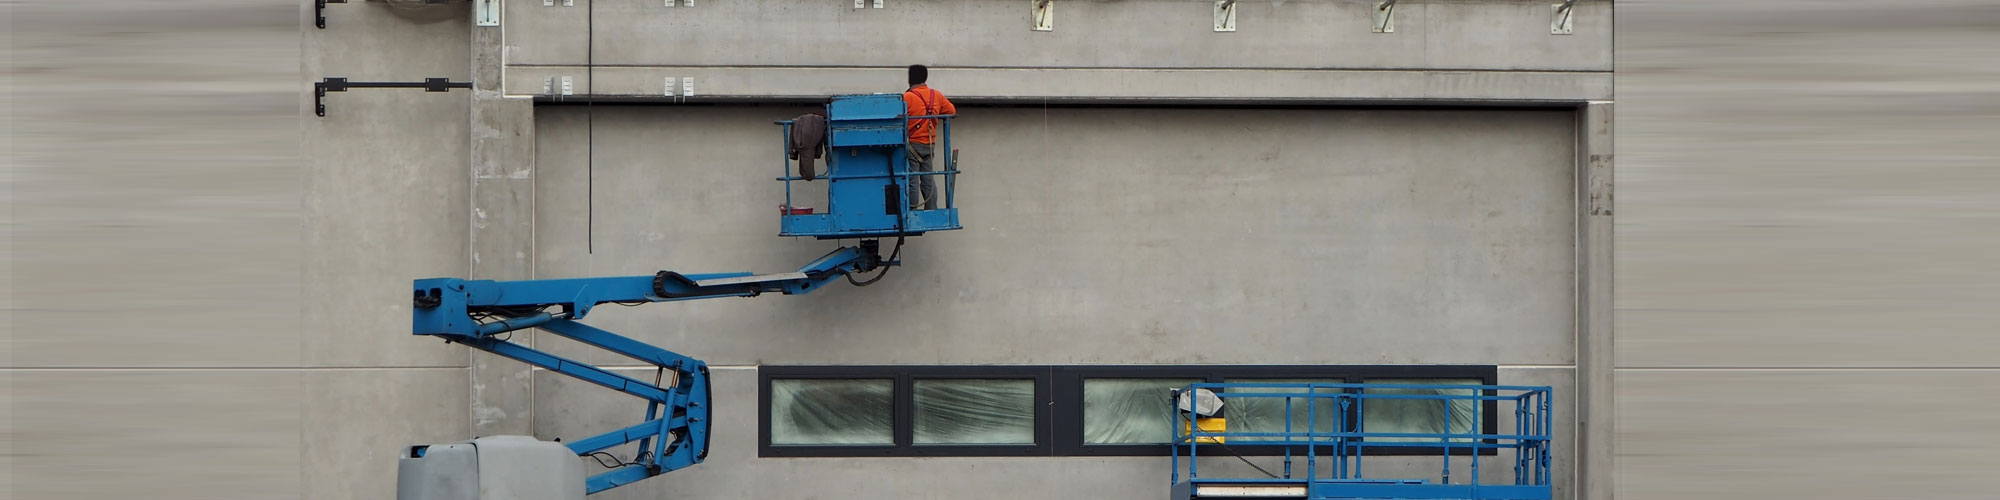 Aerial lift Training Everything You Need to Know